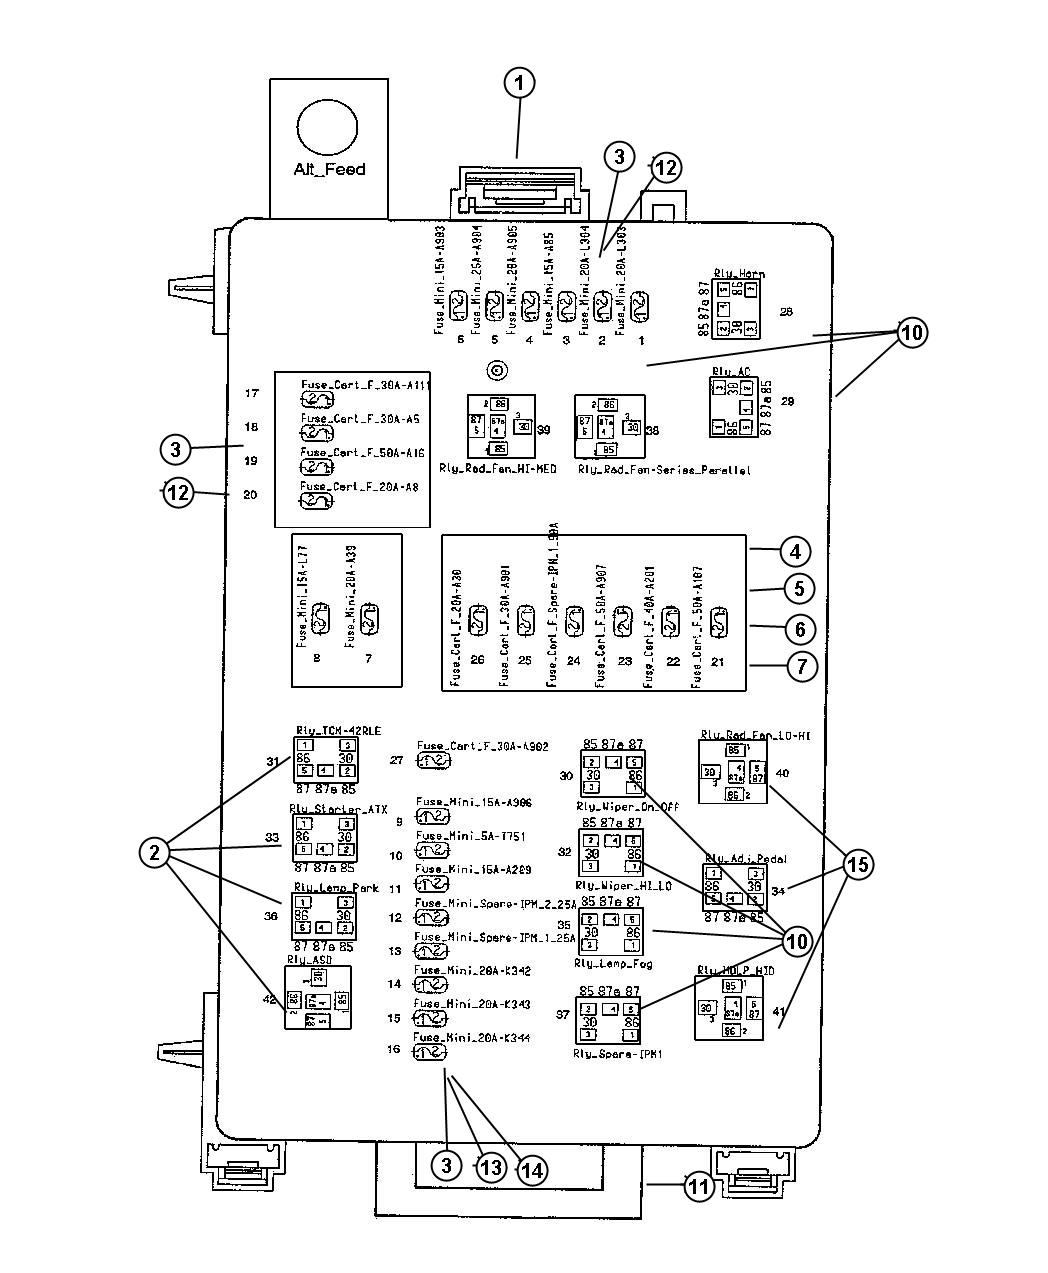 hight resolution of chrysler 300 fuse box 2007 wiring diagrams wni 2007 chrysler 300 rear fuse box diagram chrysler